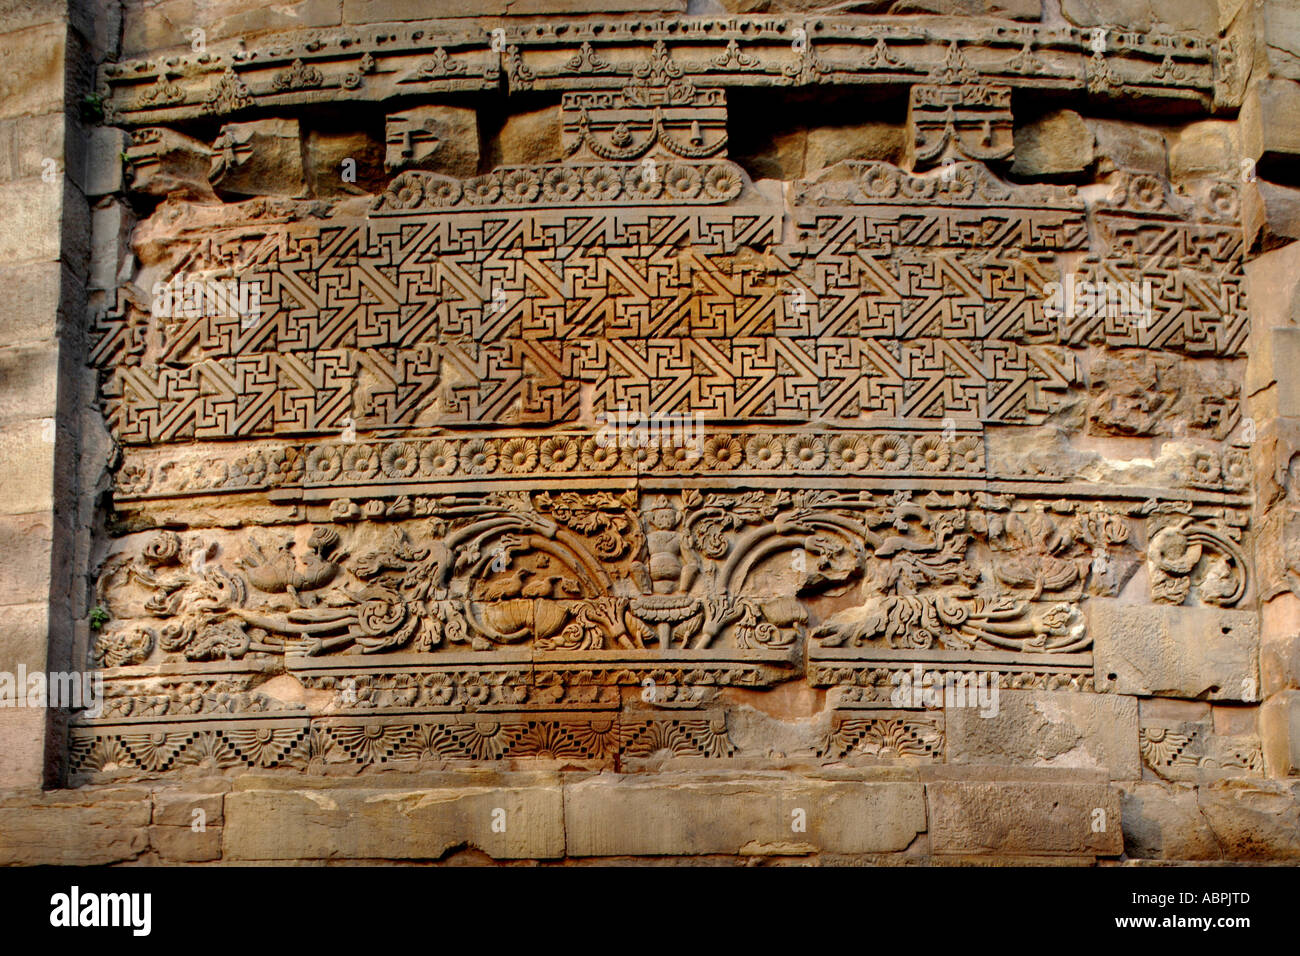 AAD78979 buddhist motifs india Buddhism widespread Asian religion or philosophy - Stock Image